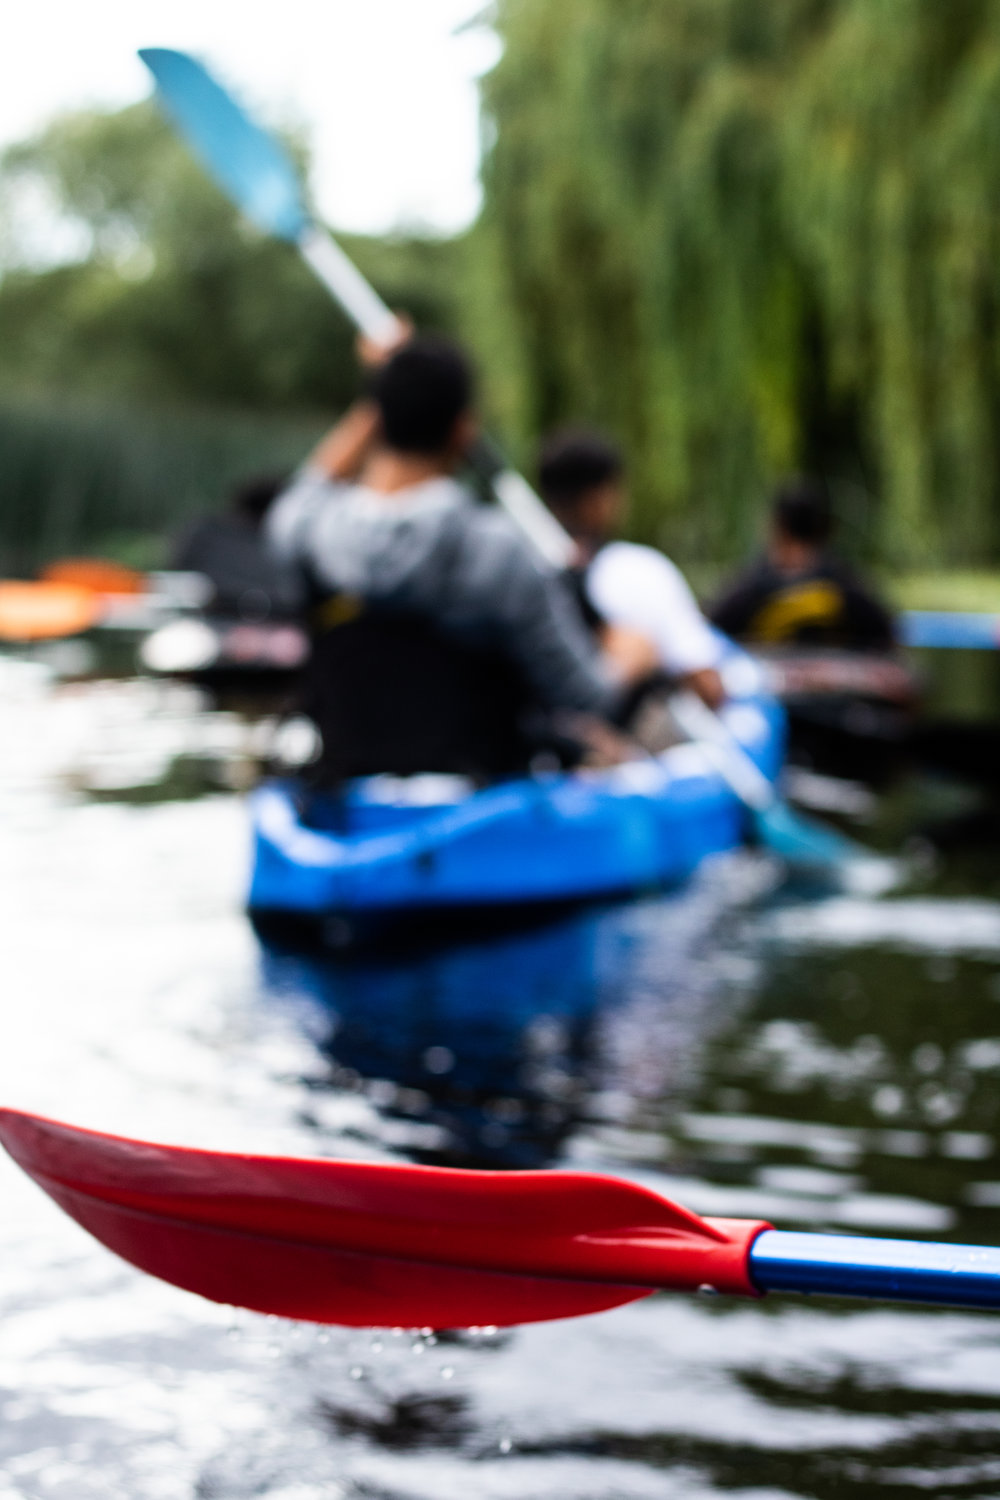 Paddle To The Pub - What it involves> Spend the day taking an adventure paddling the River Soar and indulge in a riverside pub stop off, grab a refreshing drink and some delicious food.Dates Available> April 2019 - October 2019Group Size> 1-10What it includes> Kayak, lifejacket, paddle and guide.What you will need to bring> Snacks, drinks bottle, sunglasses> Clothes you don't mind getting wet - t-shirt, waterproof jacket & trousers, shorts or trouser, socks and shoes> Dry bagInvestmentChildren (17 years and under) - £49 (Half Day), £59 (Full Day)Adults - £59 (Half Day), £79 (Full Day)Prices above are for hire, please add £10 for a guide